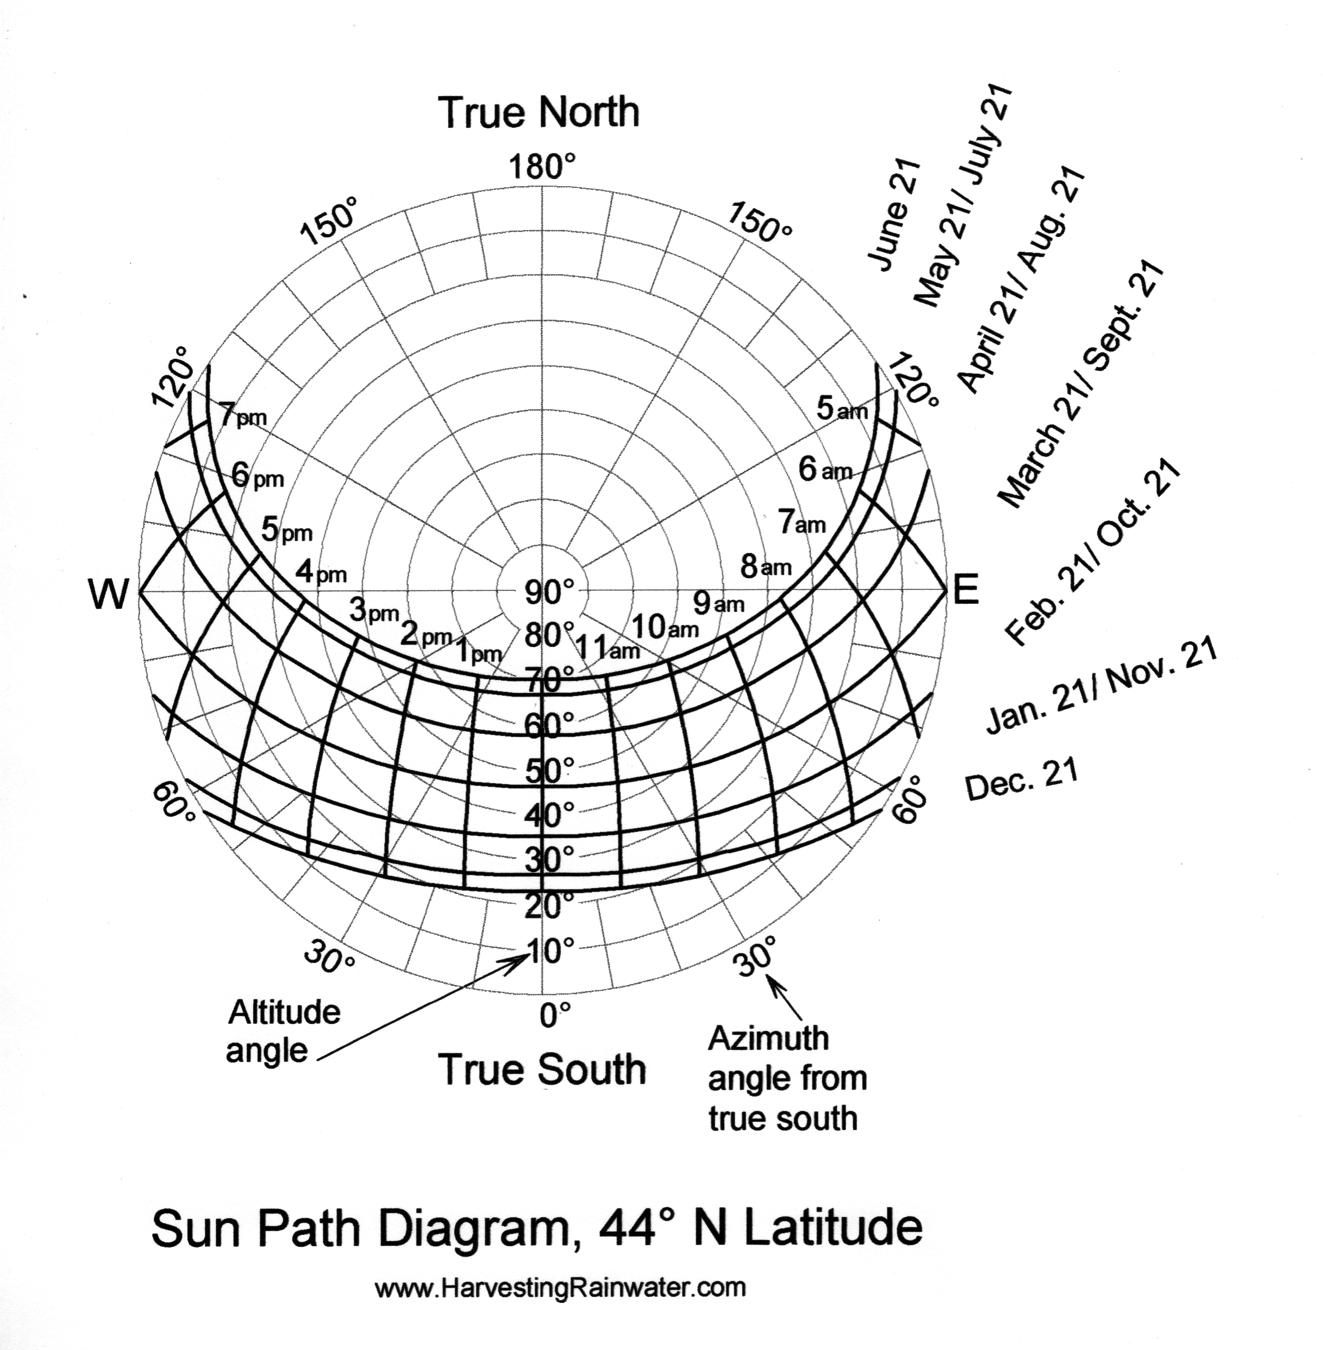 Sun Path Diagram 44o N Latitude